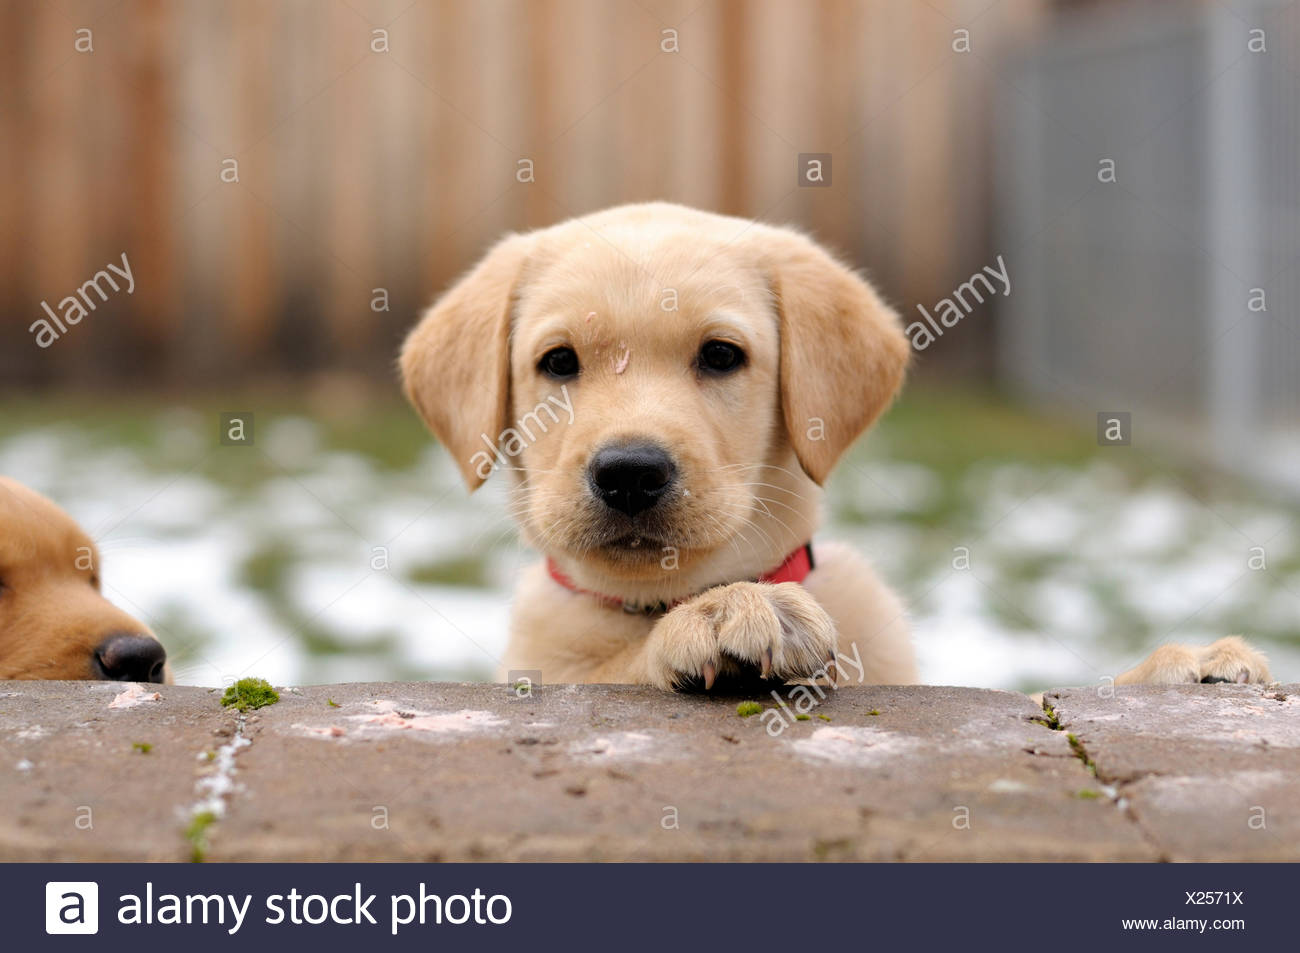 Blonde Labrador Retriever Puppy Looking Over A Wall Stock Photo Alamy